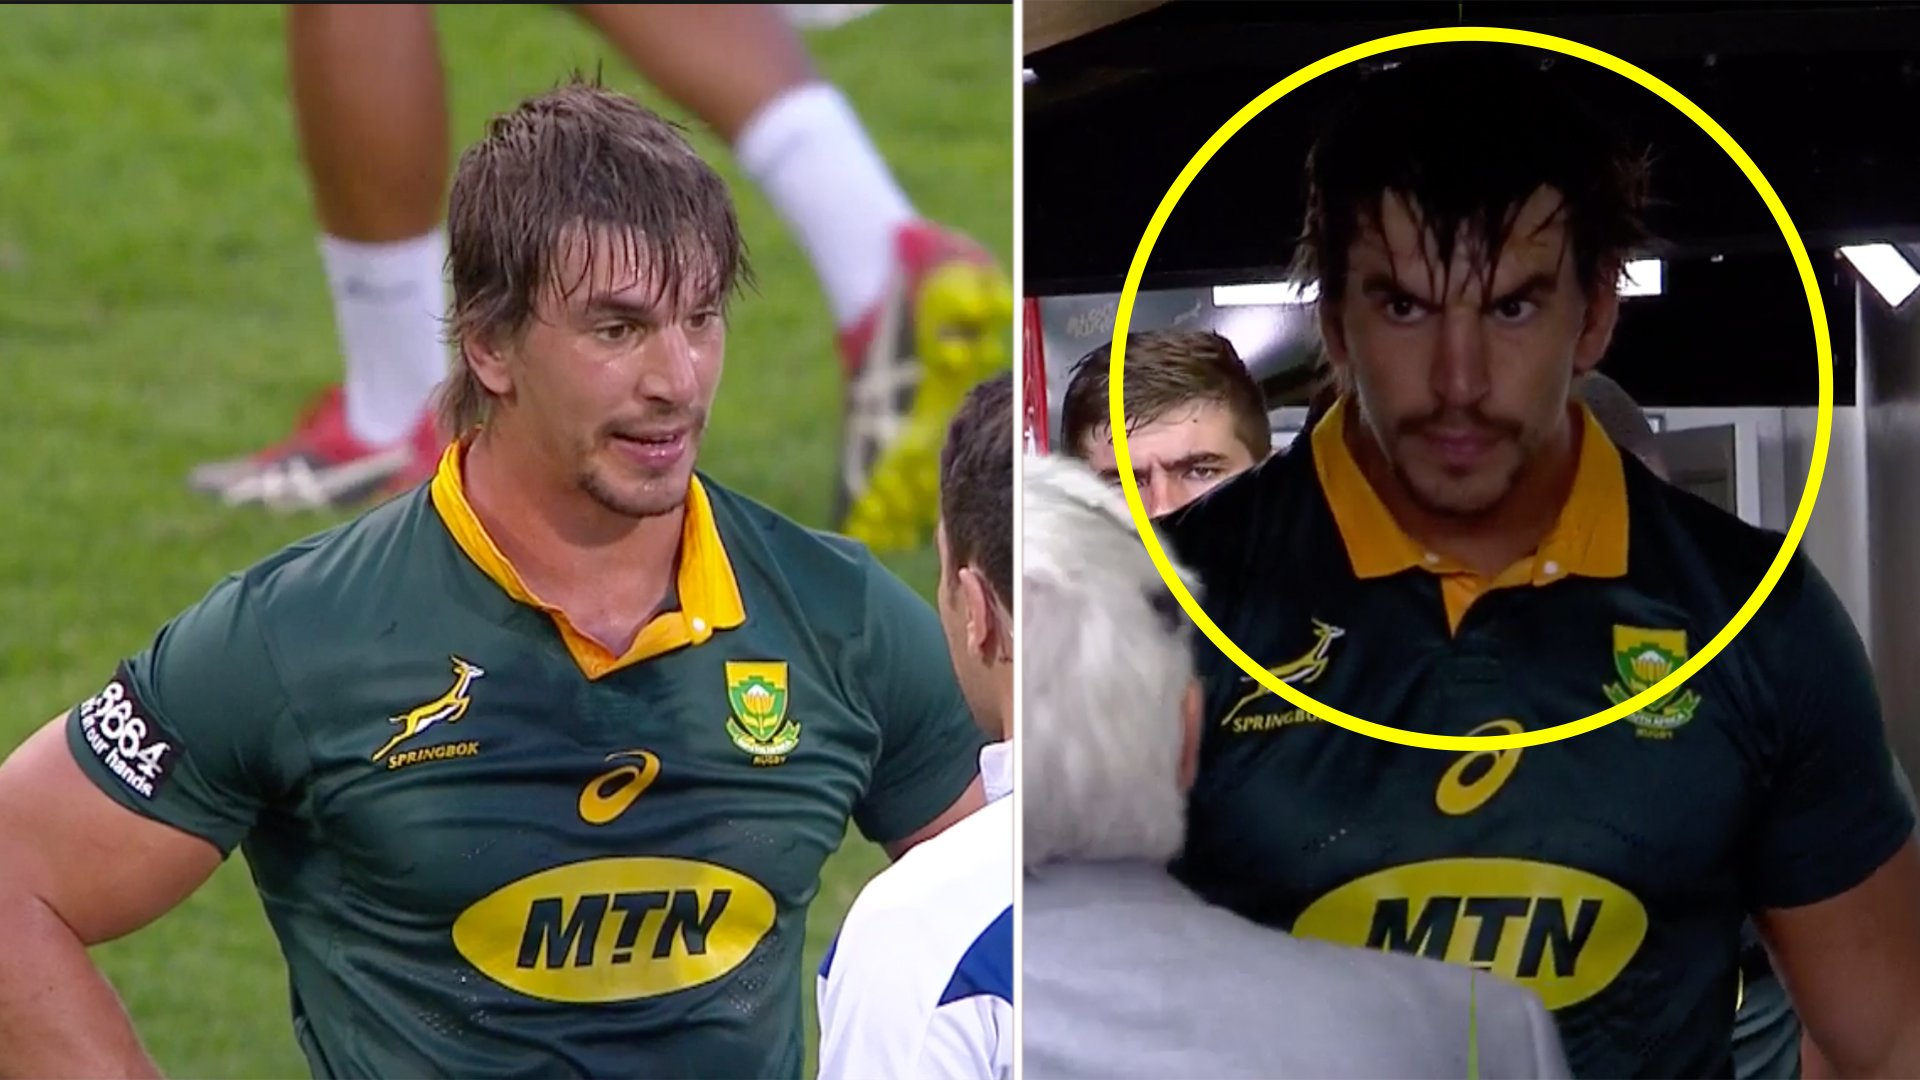 The incident which earned Eben Etzebeth the reputation as the scariest man in rugby